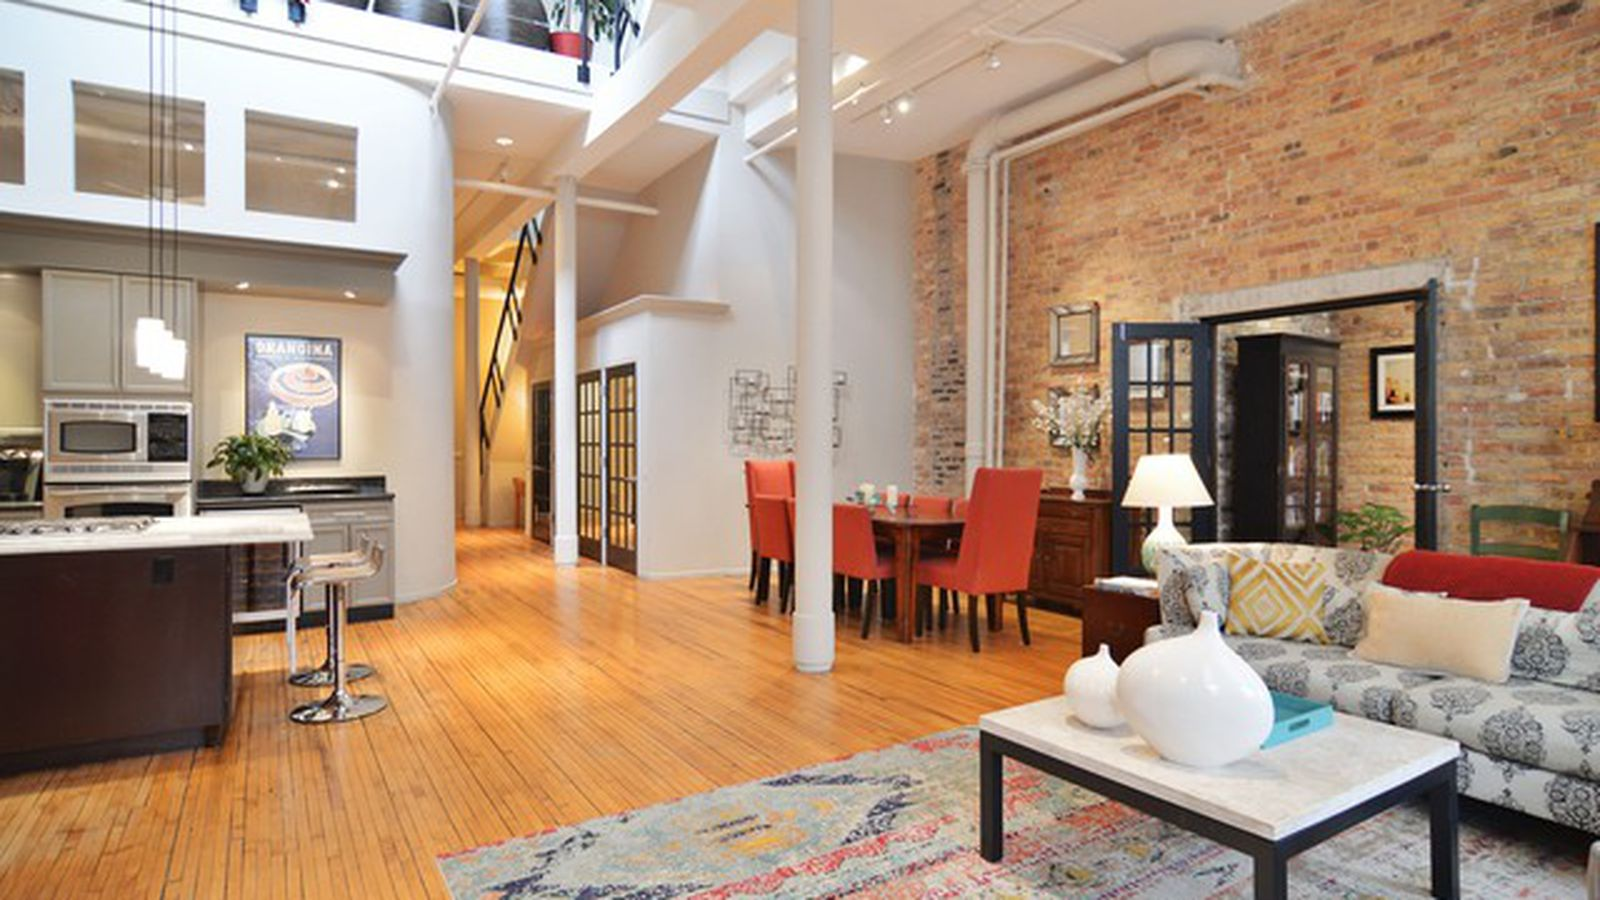 Bright three bedroom lakeview duplex loft asks 625k for Hathaway furniture new york